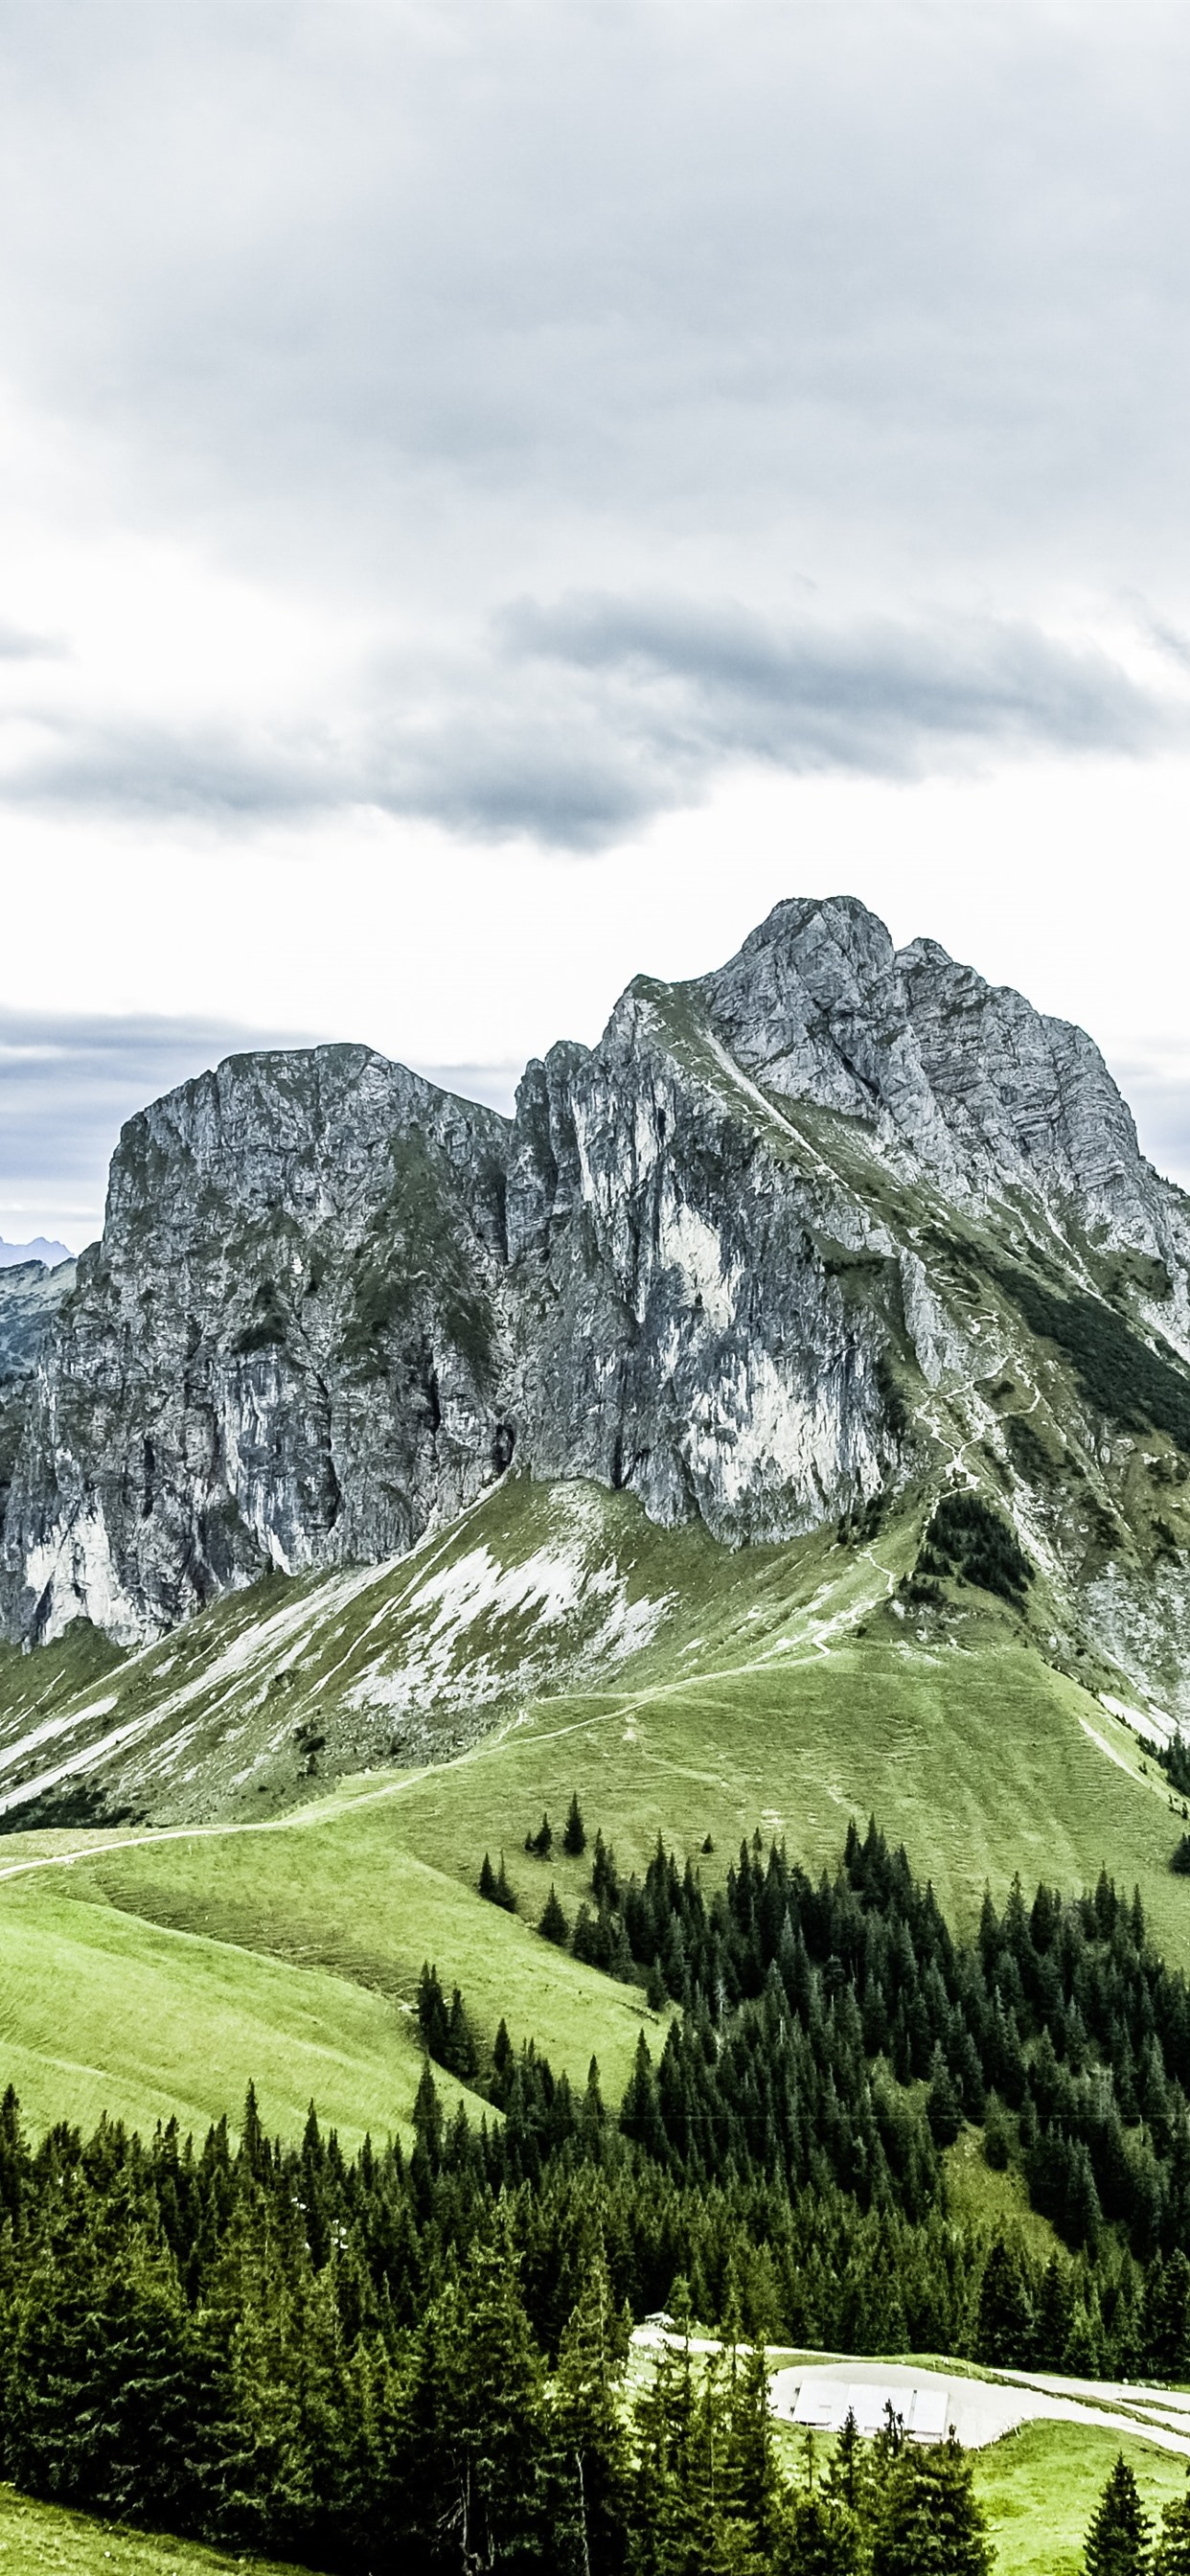 Mountains Path Trees Green Top View 1242x2688 Iphone 11 Pro Xs Max Wallpaper Background Picture Image